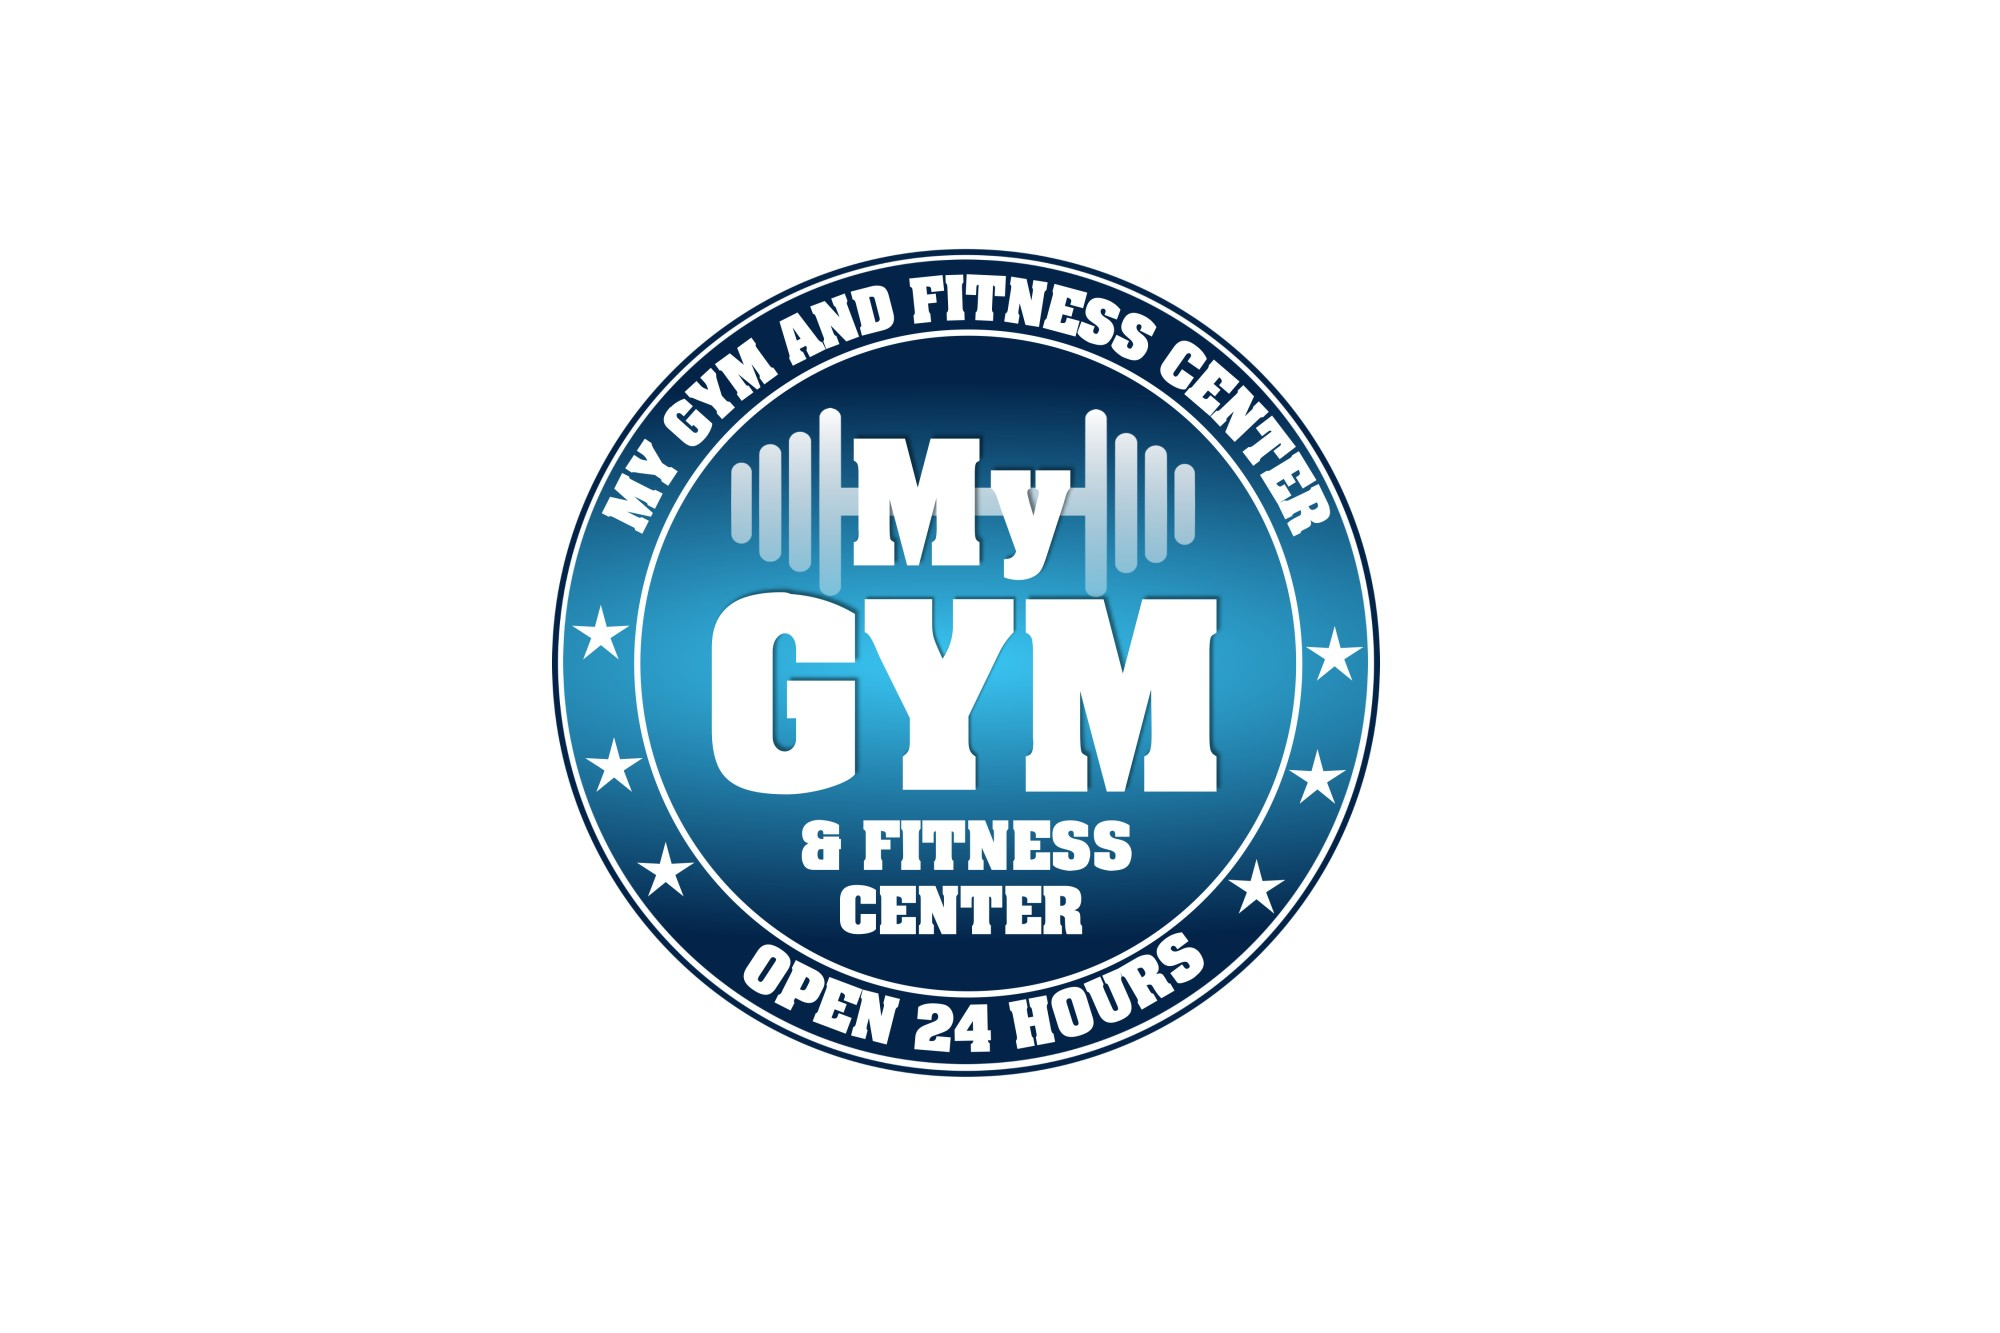 New logo wanted for My Gym and Fitness Center